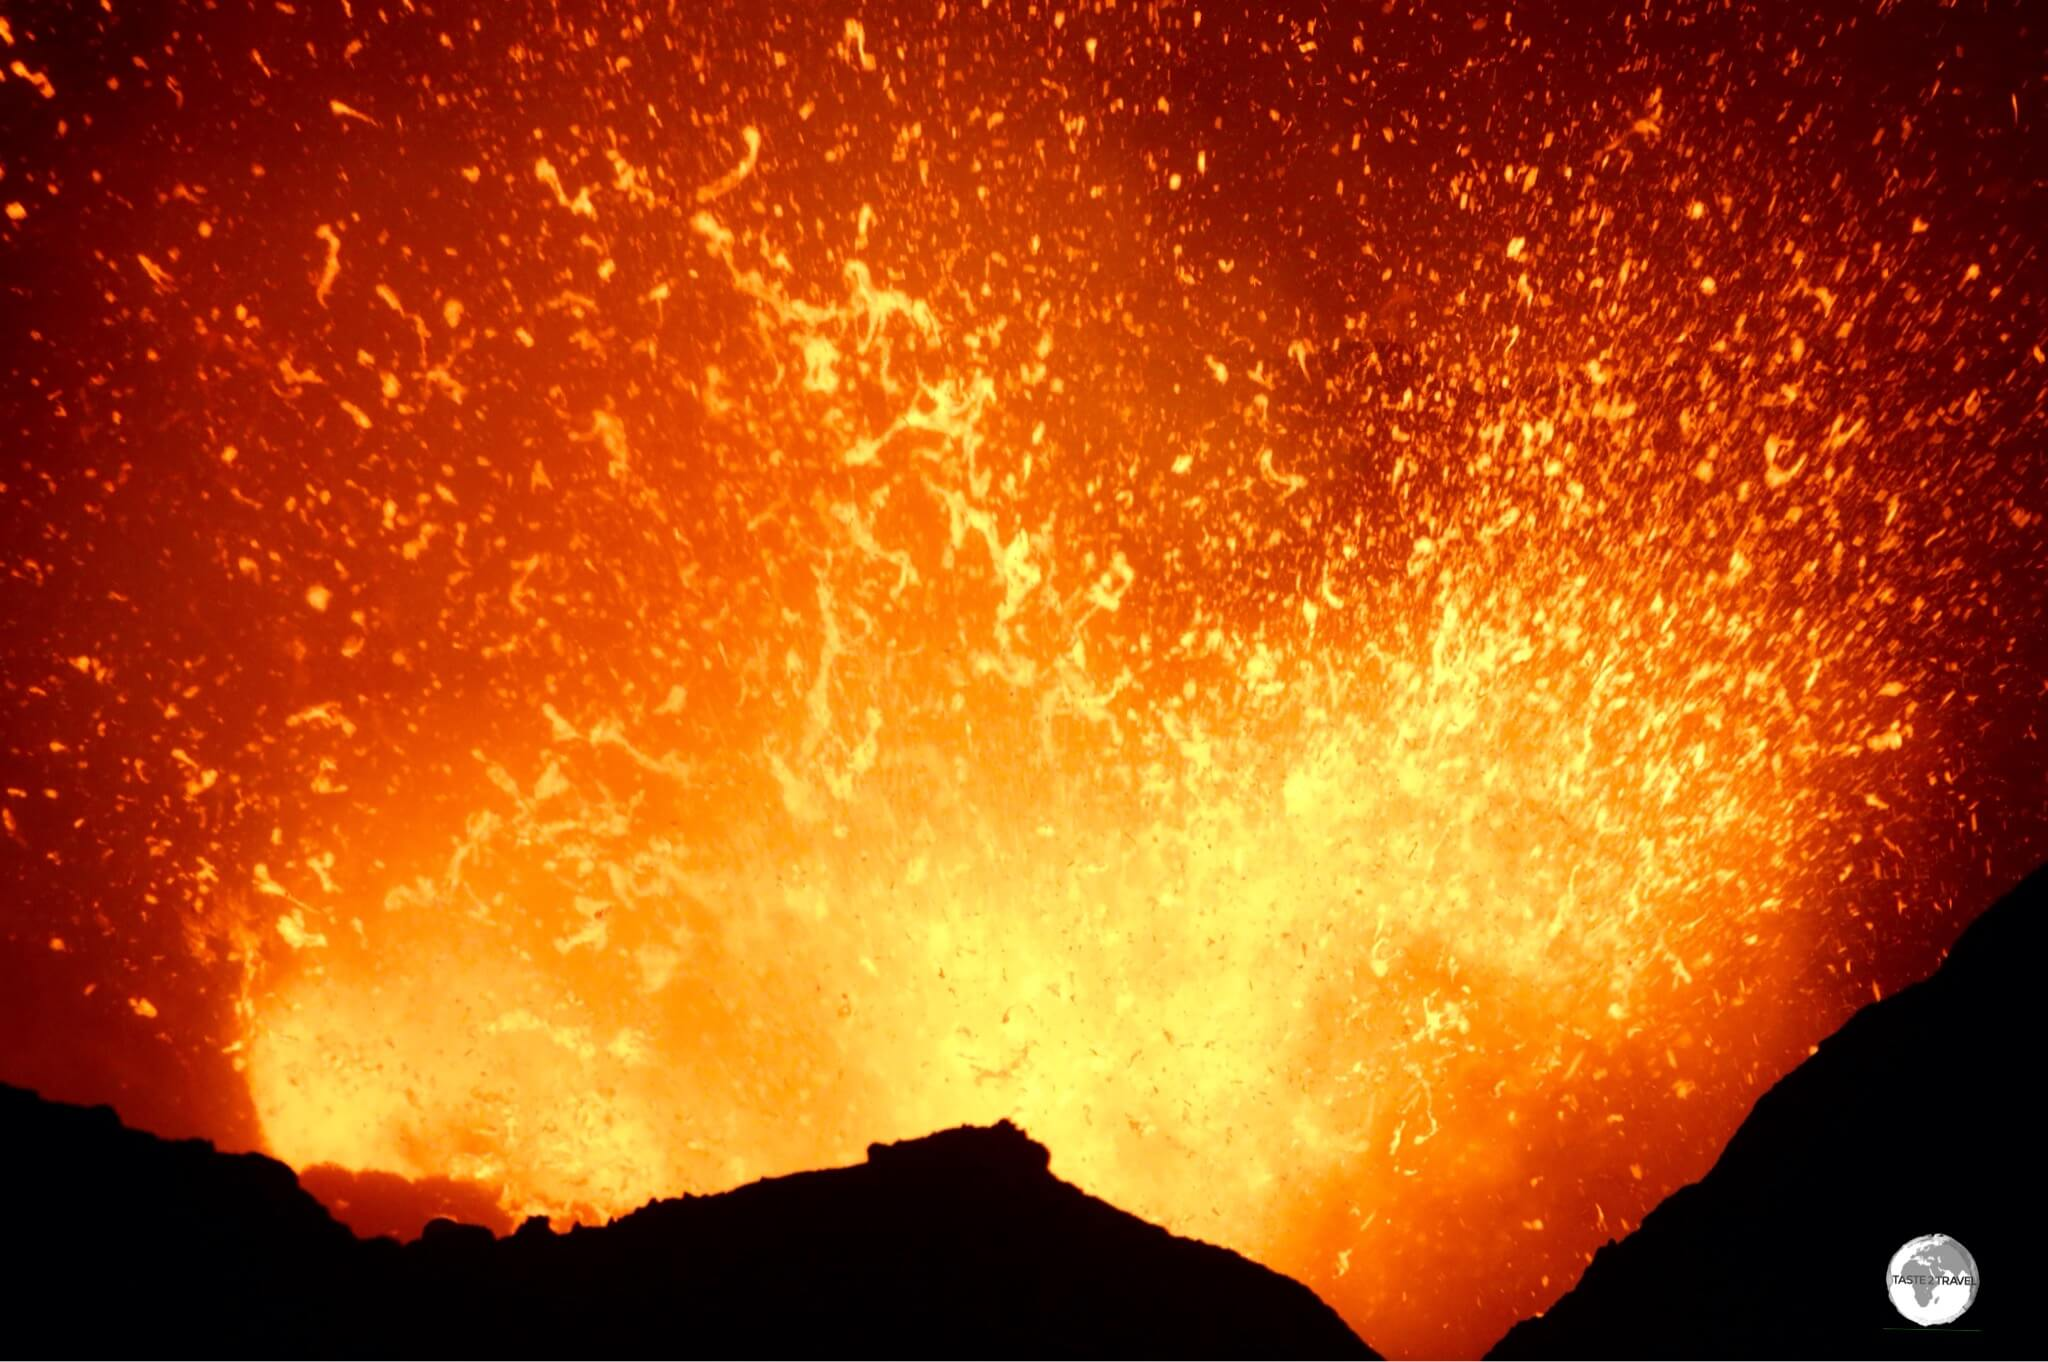 A spectacular sight, an explosive burst of activity, as viewed from the edge of the rim of Mount Yasur Volcano on Tanna island.